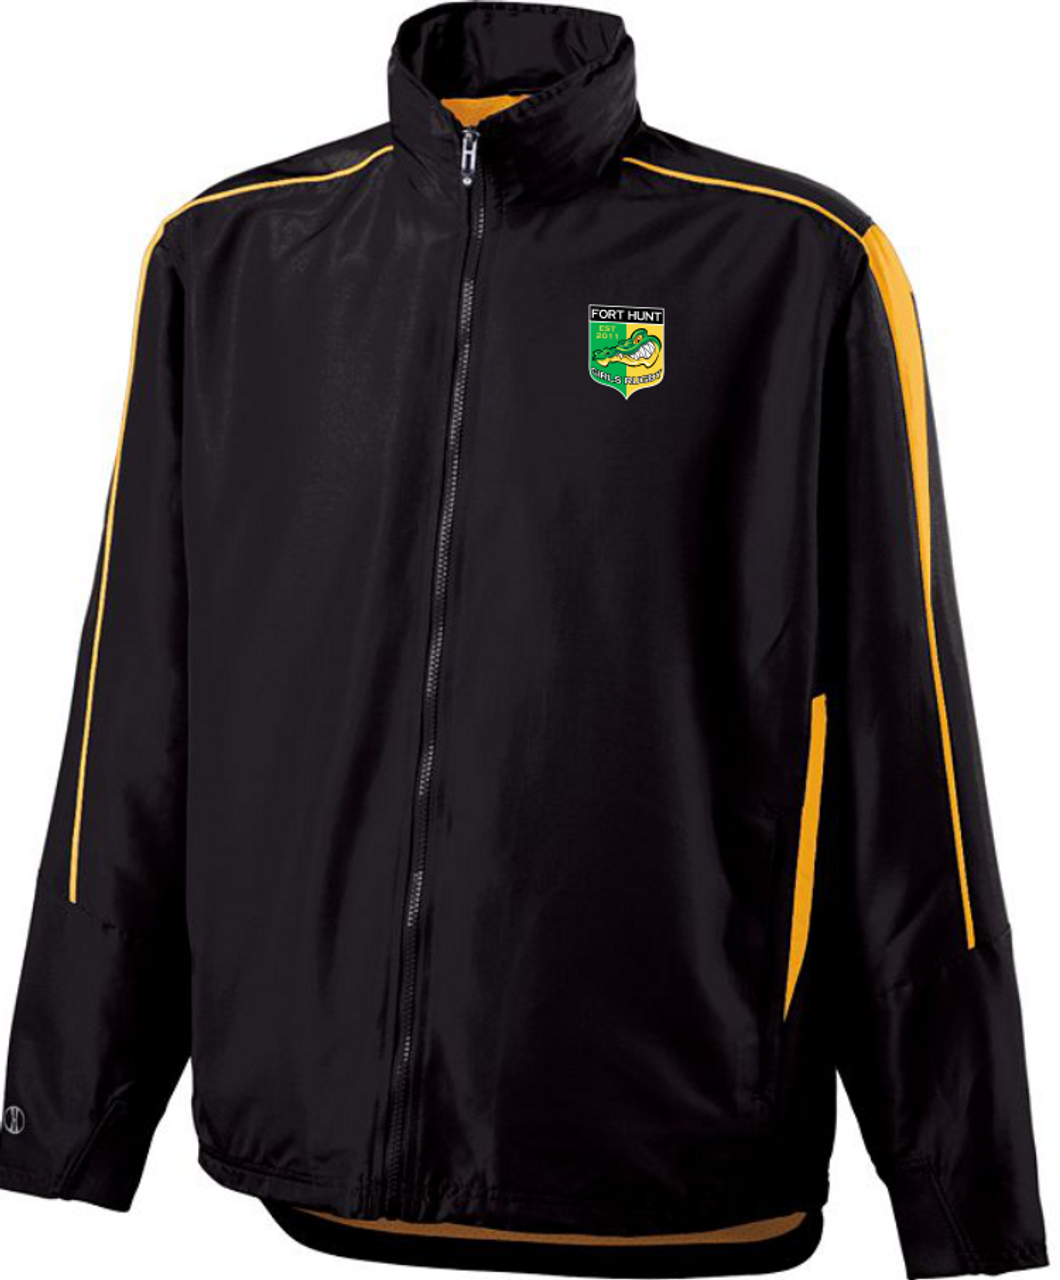 Warm-up jacket shown with tuck-away hood rolled into the collar.